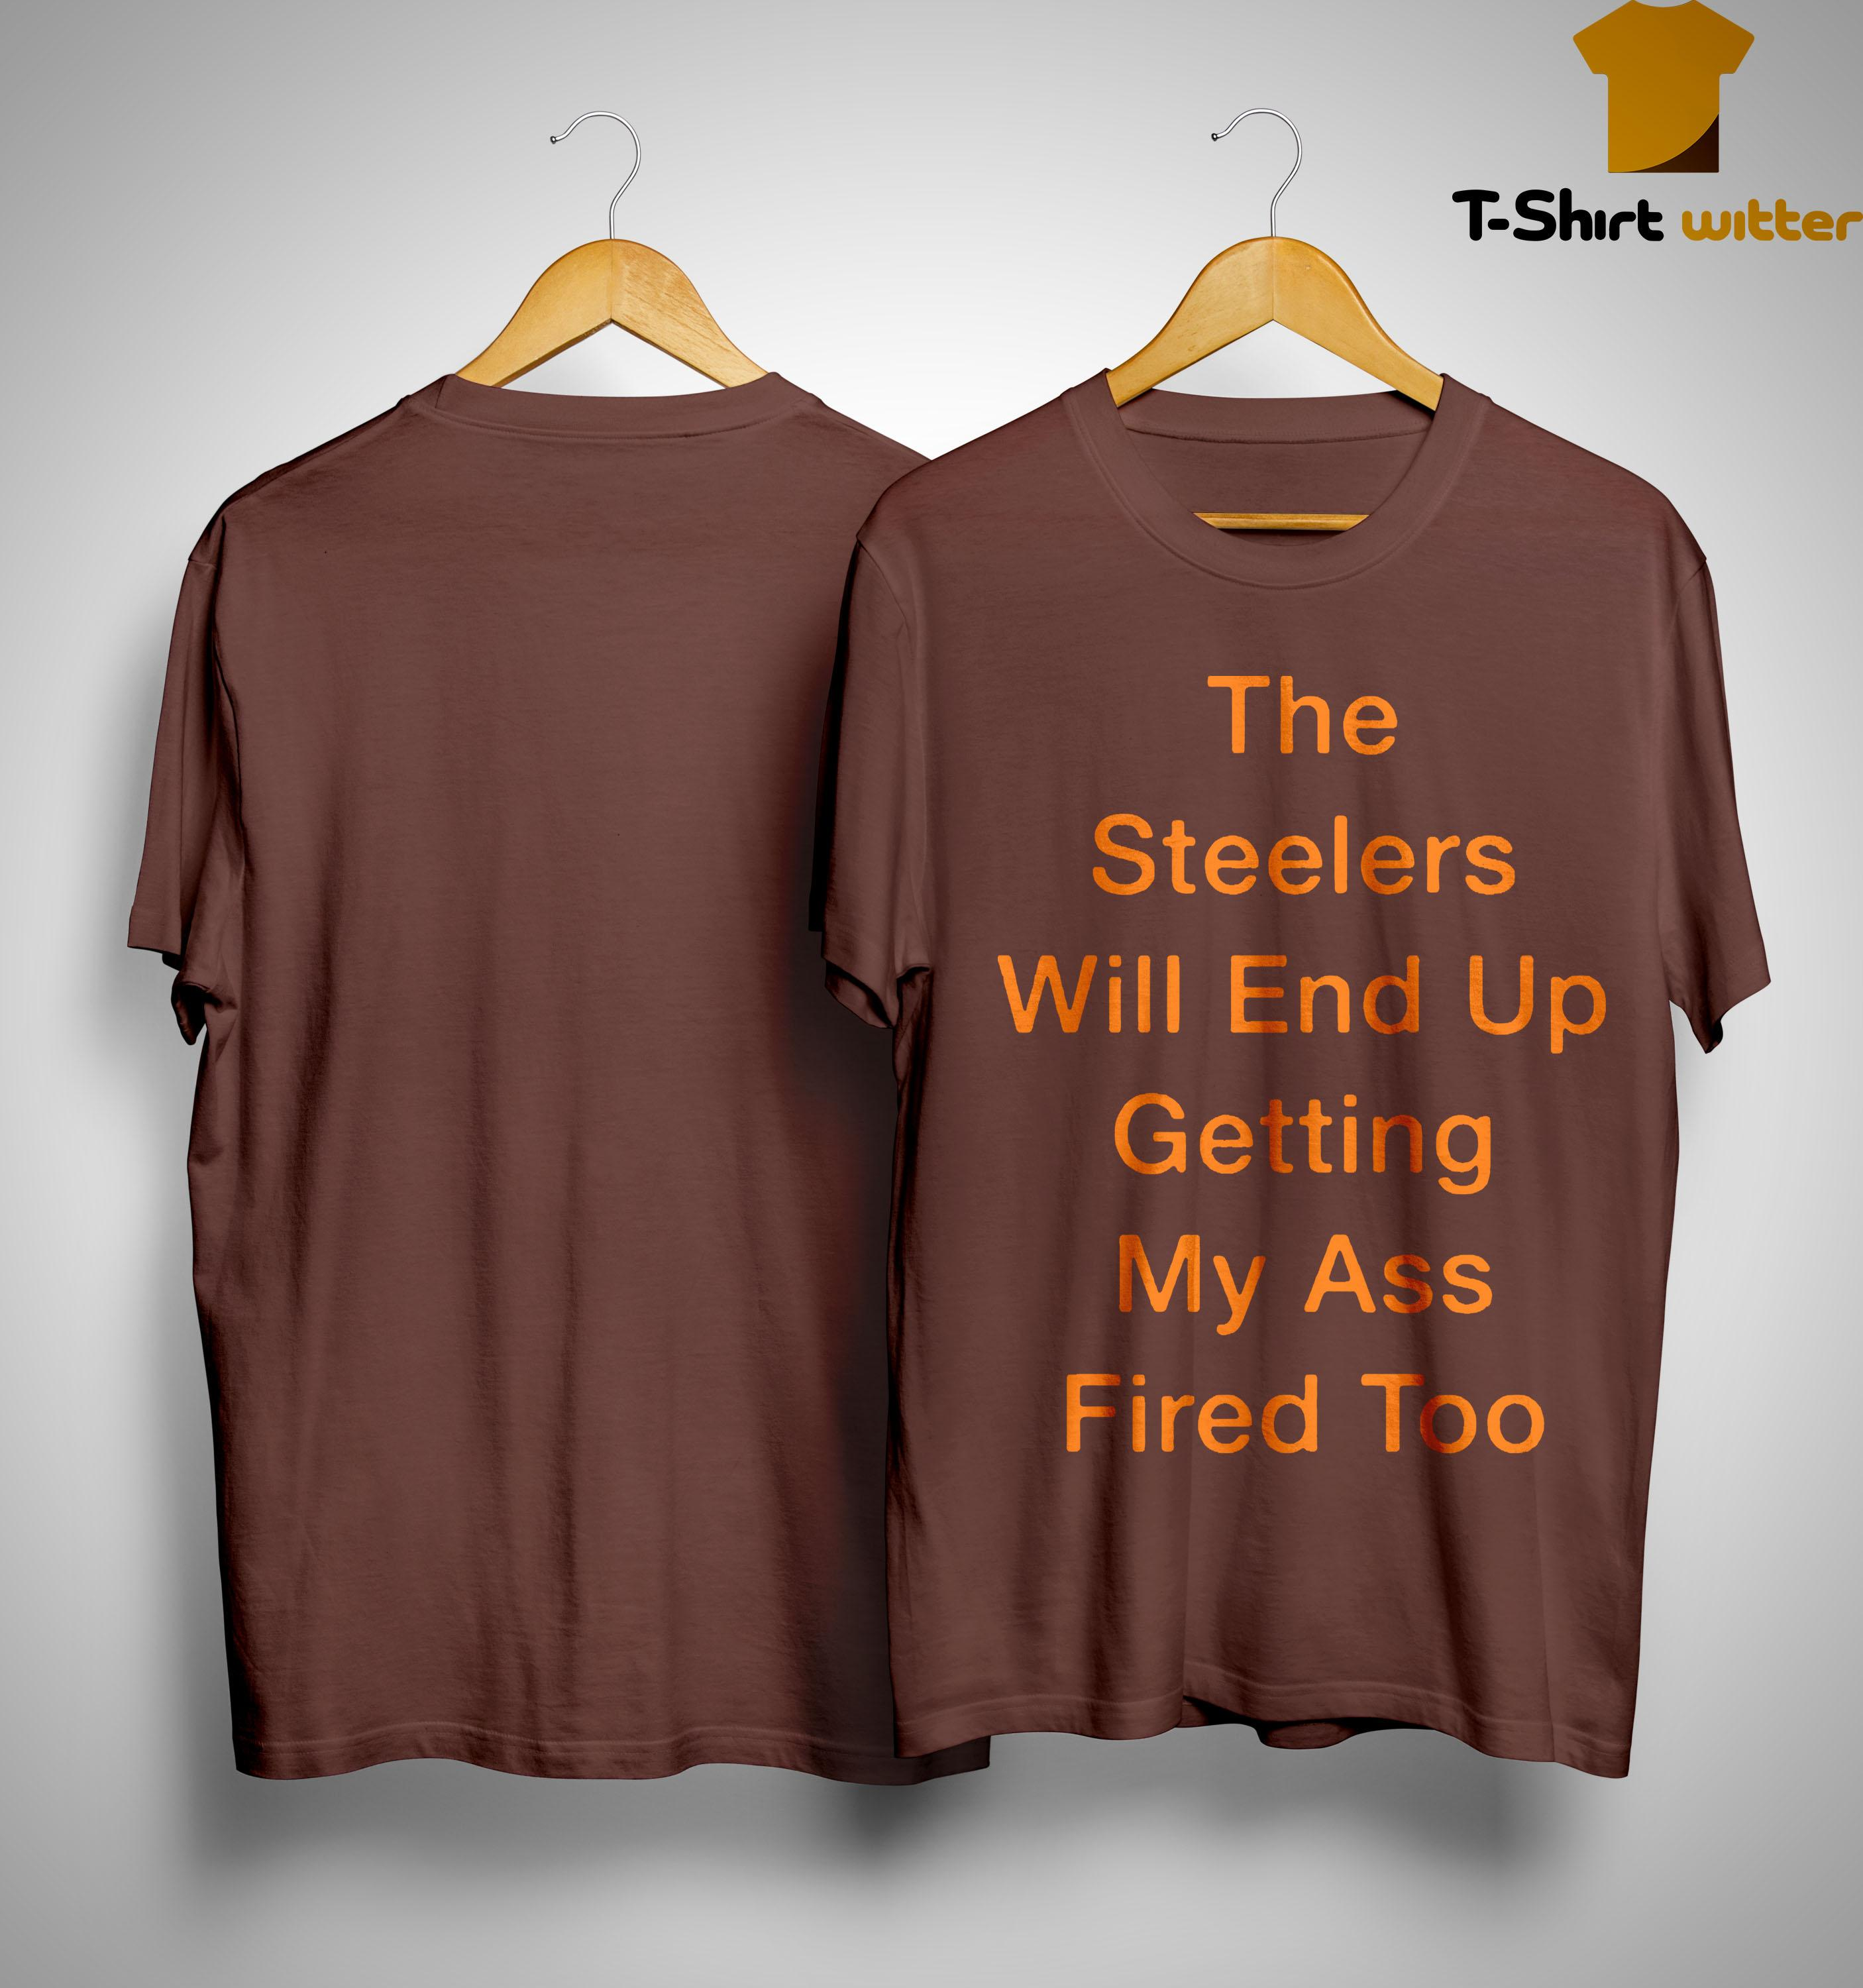 The Steelers Will End Up Getting My Ass Fired Too Shirt